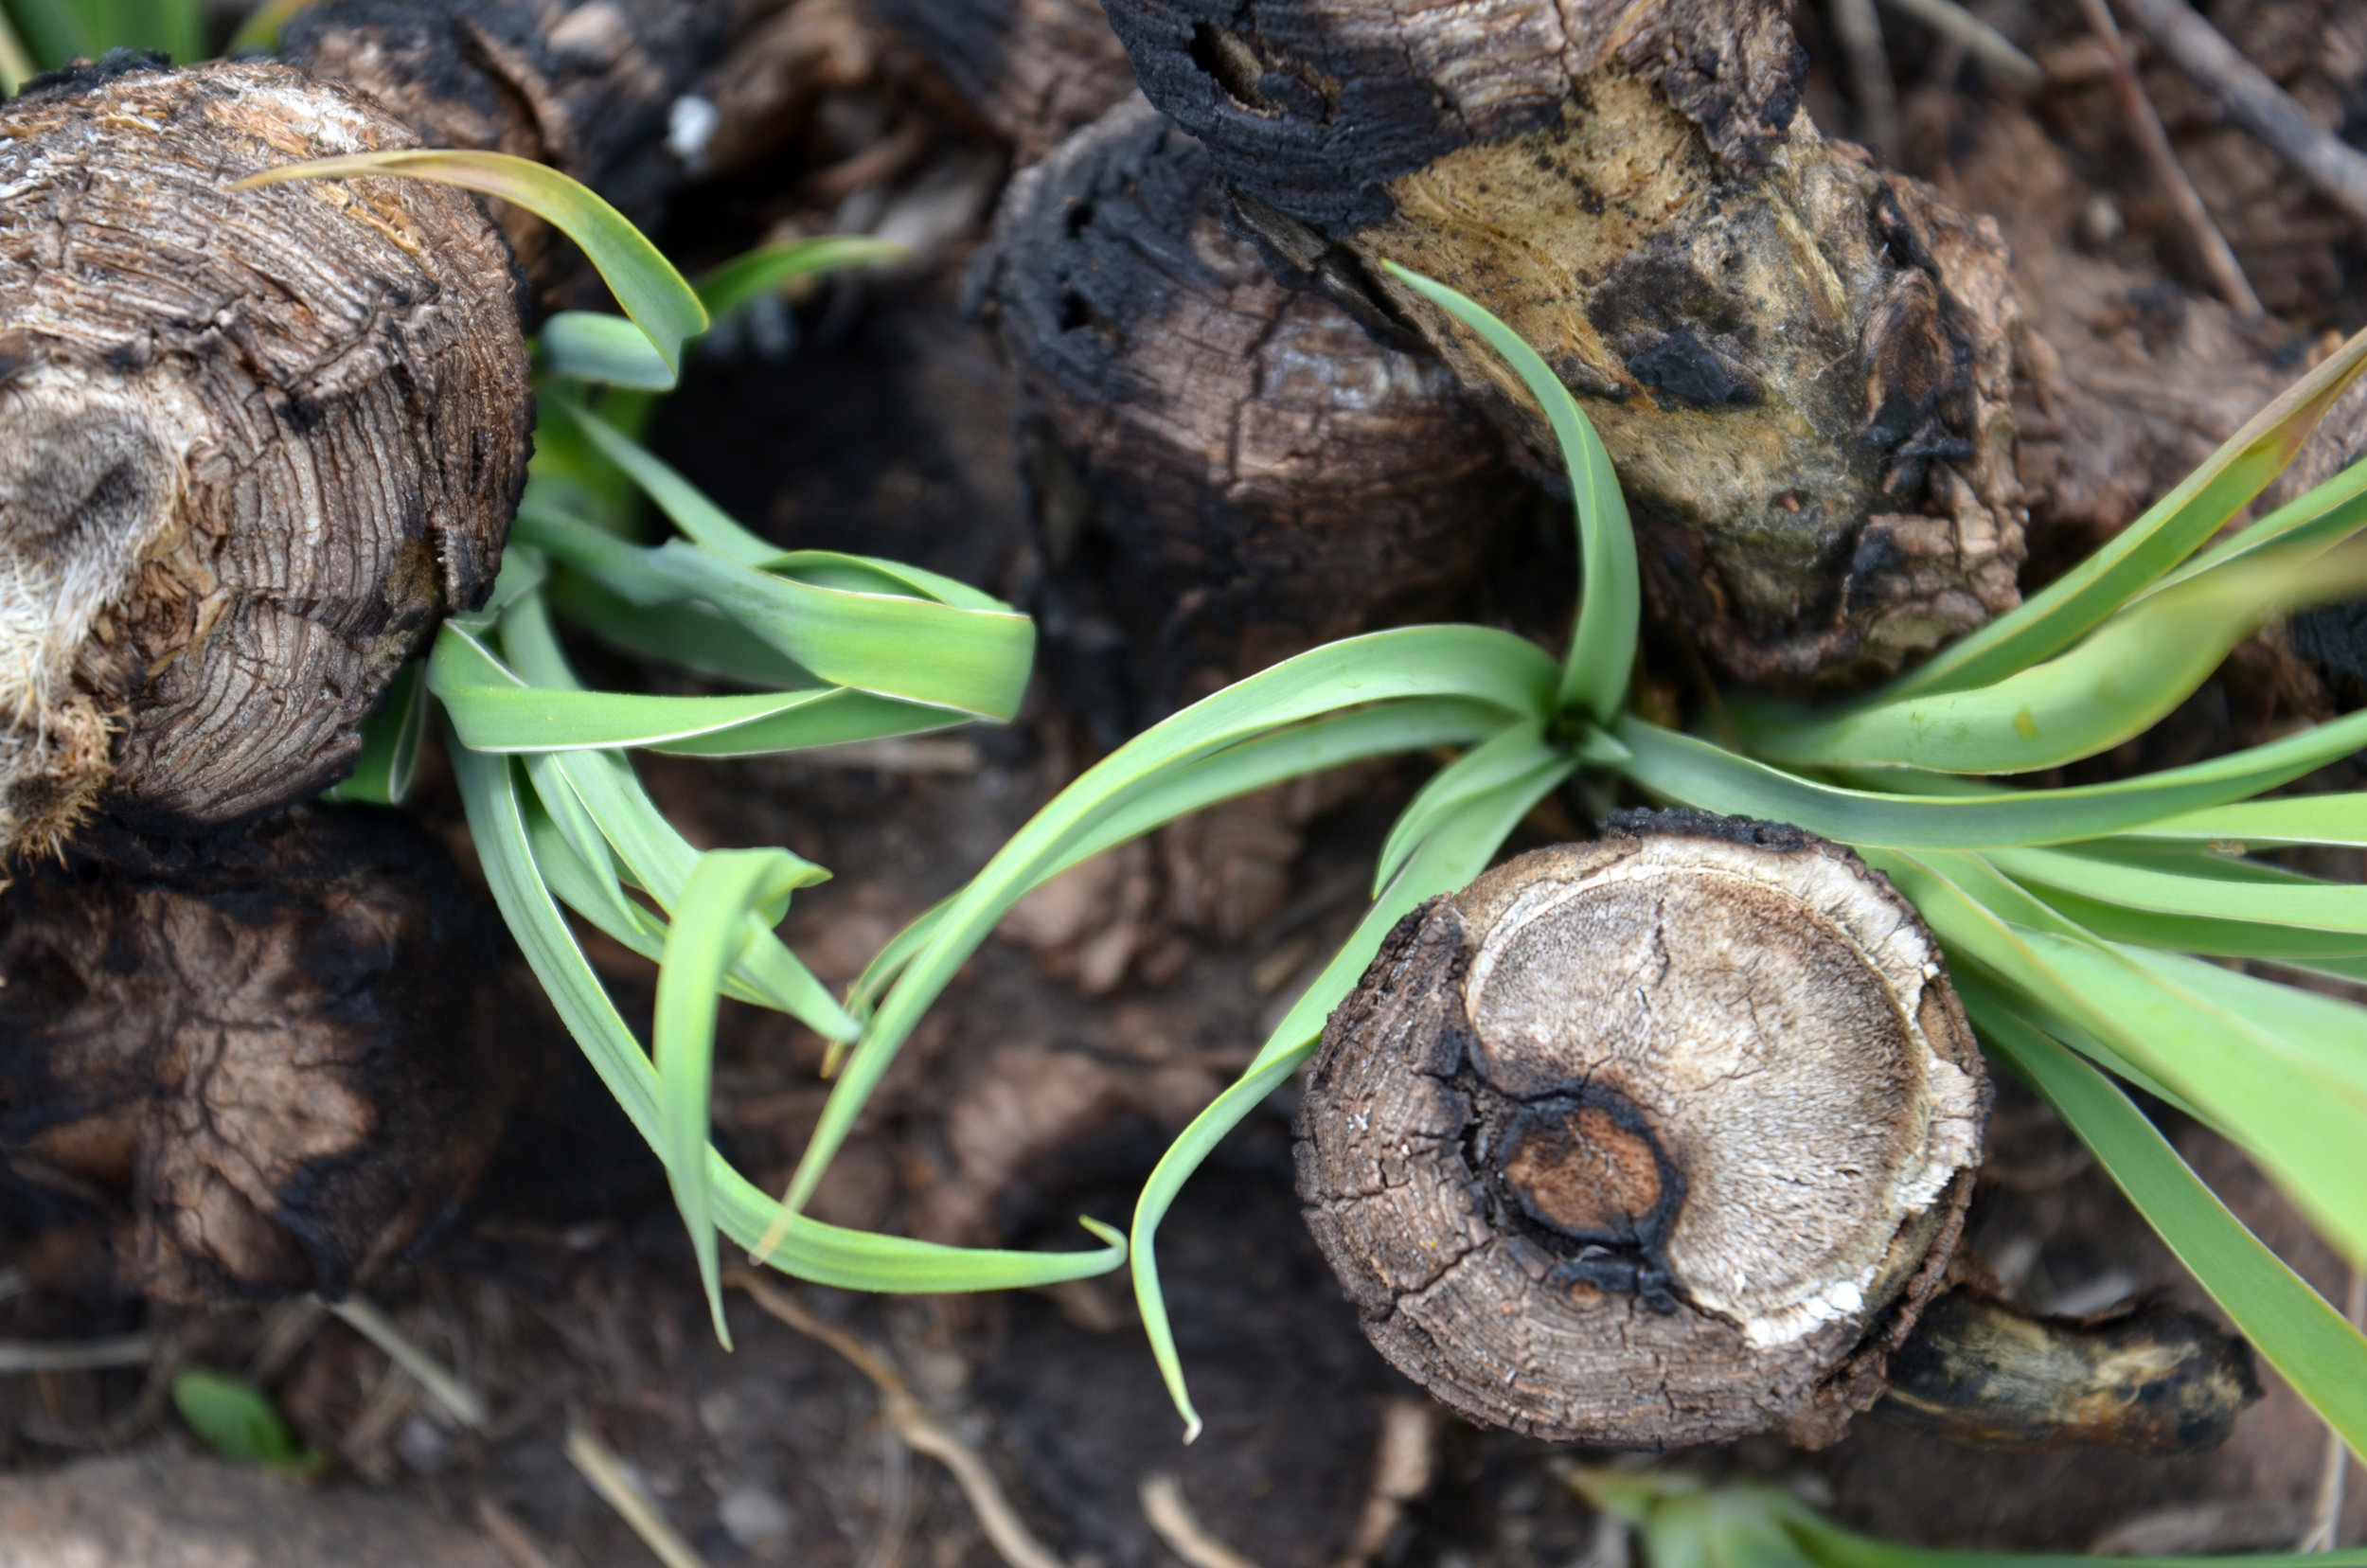 Burned Yucca plants with new green shoots